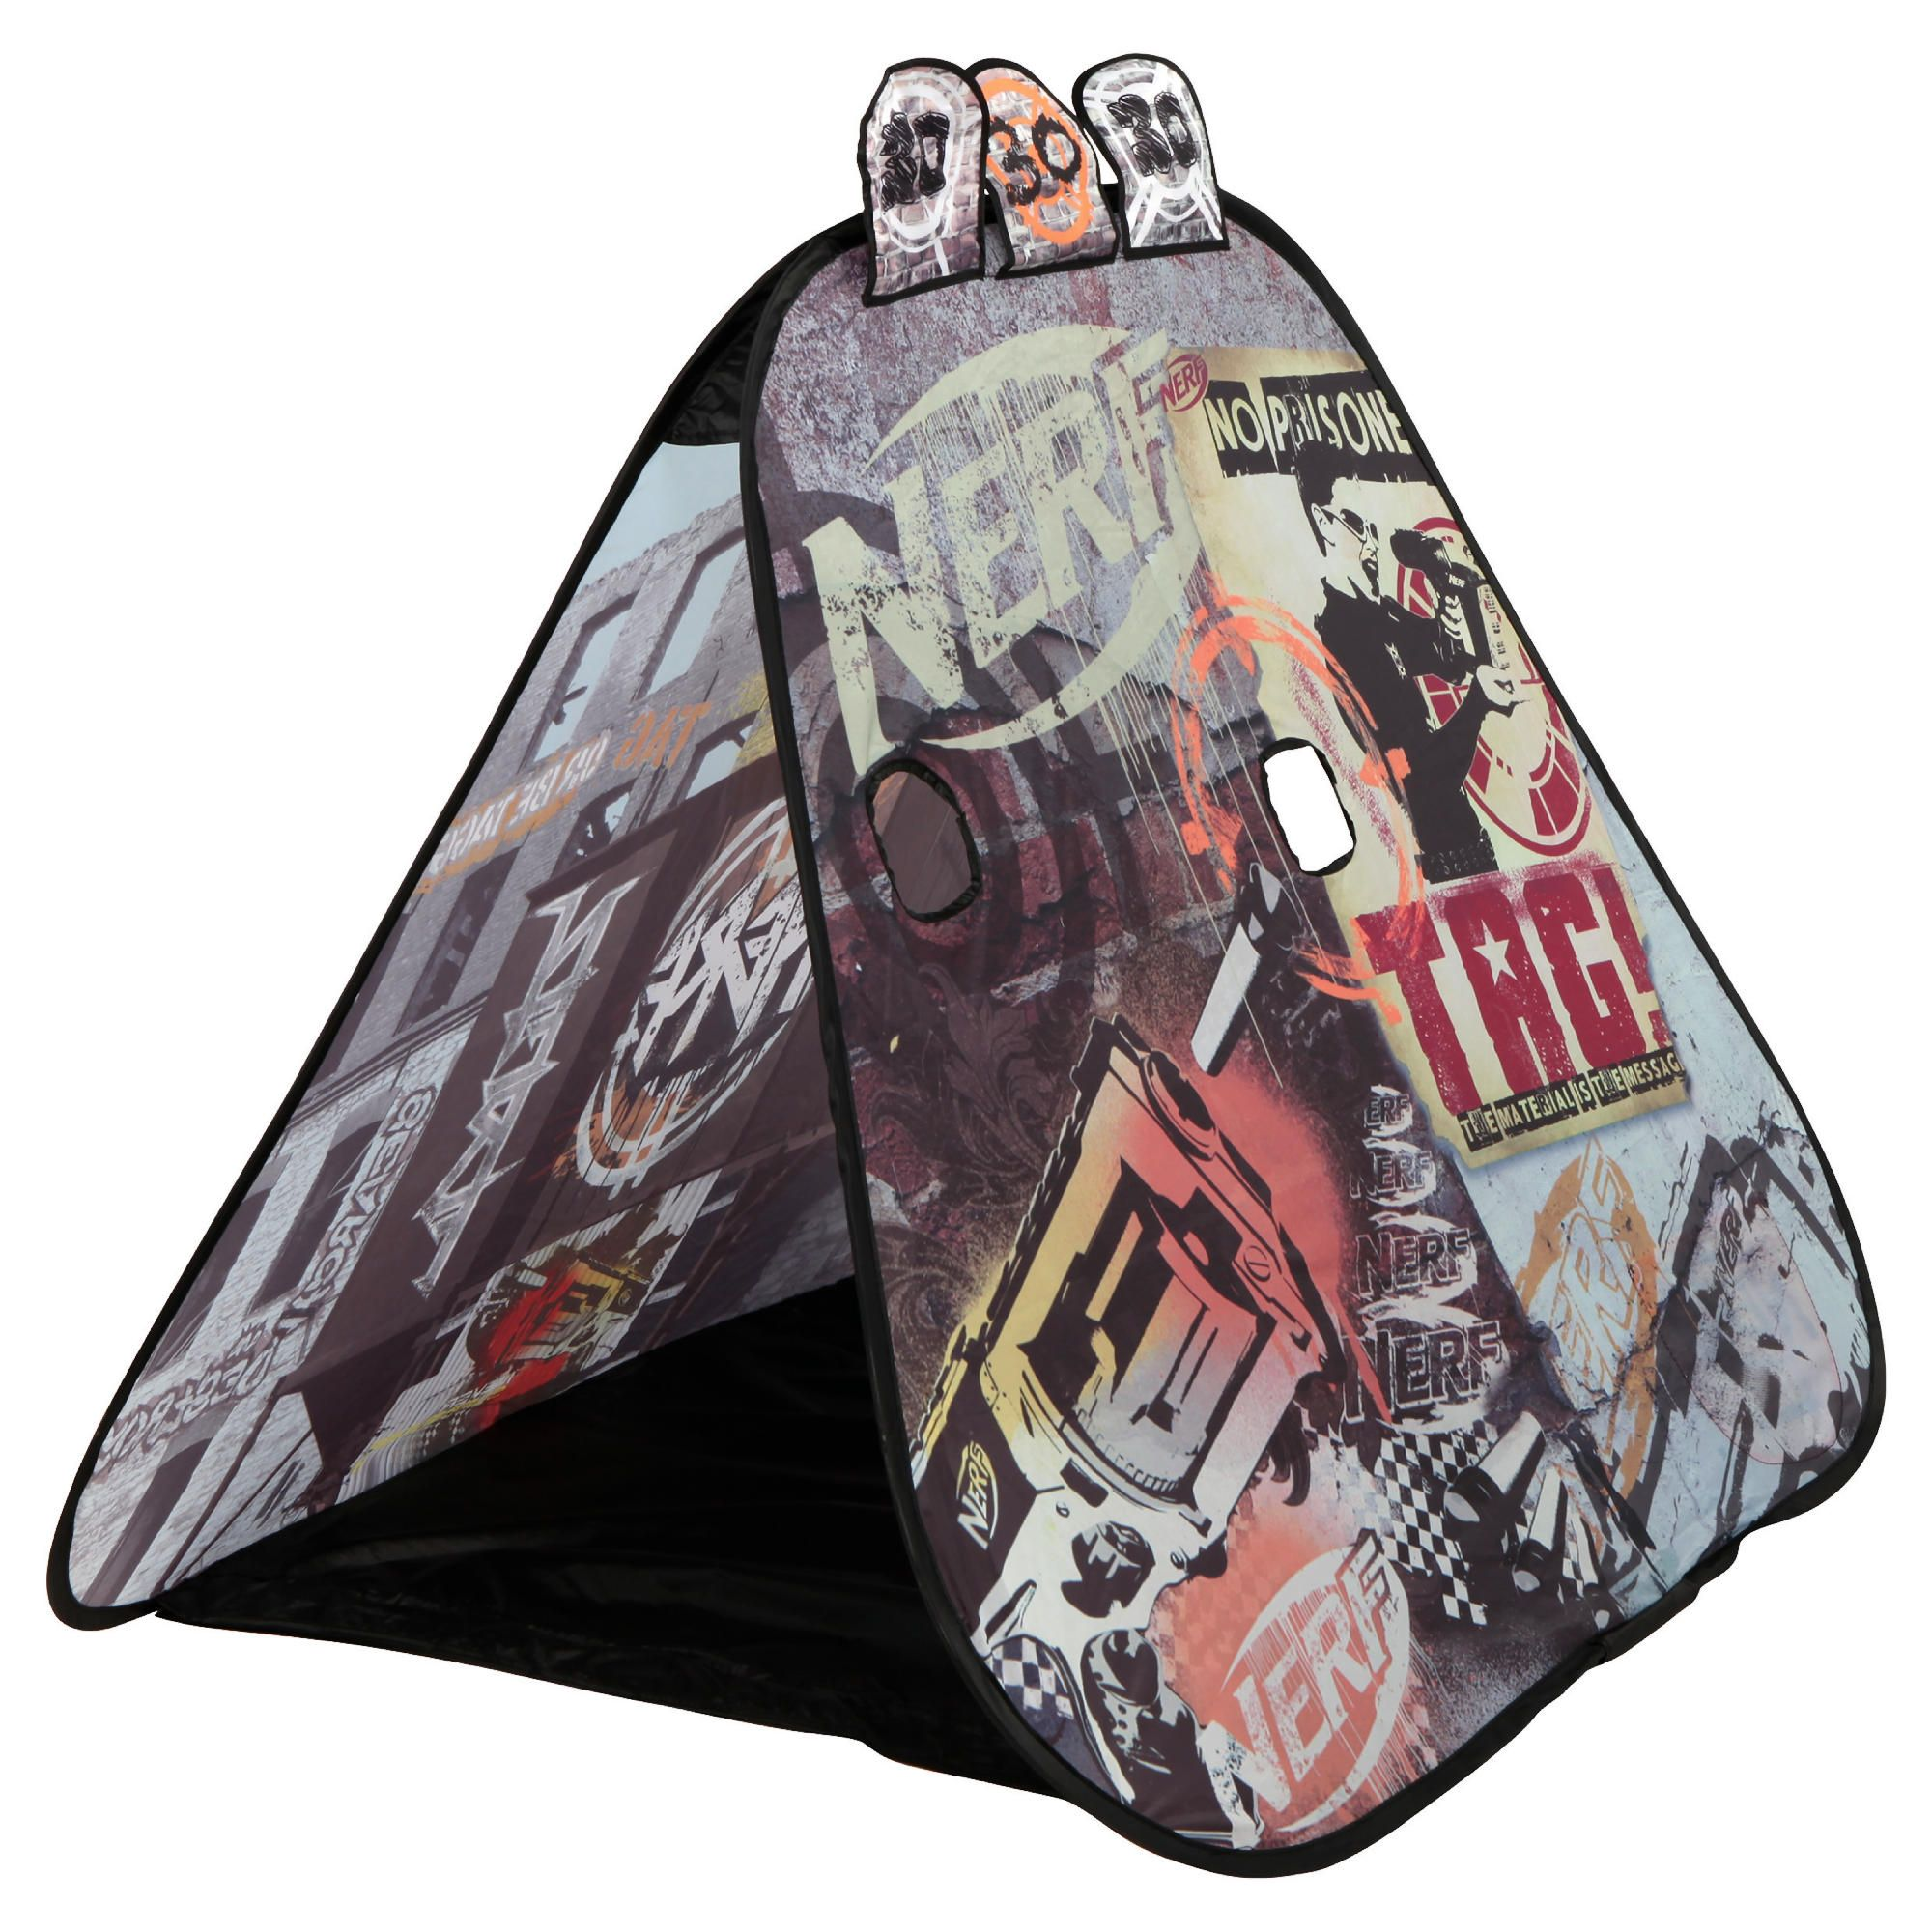 Nerf Combat Shelter Pop-up Play Tent